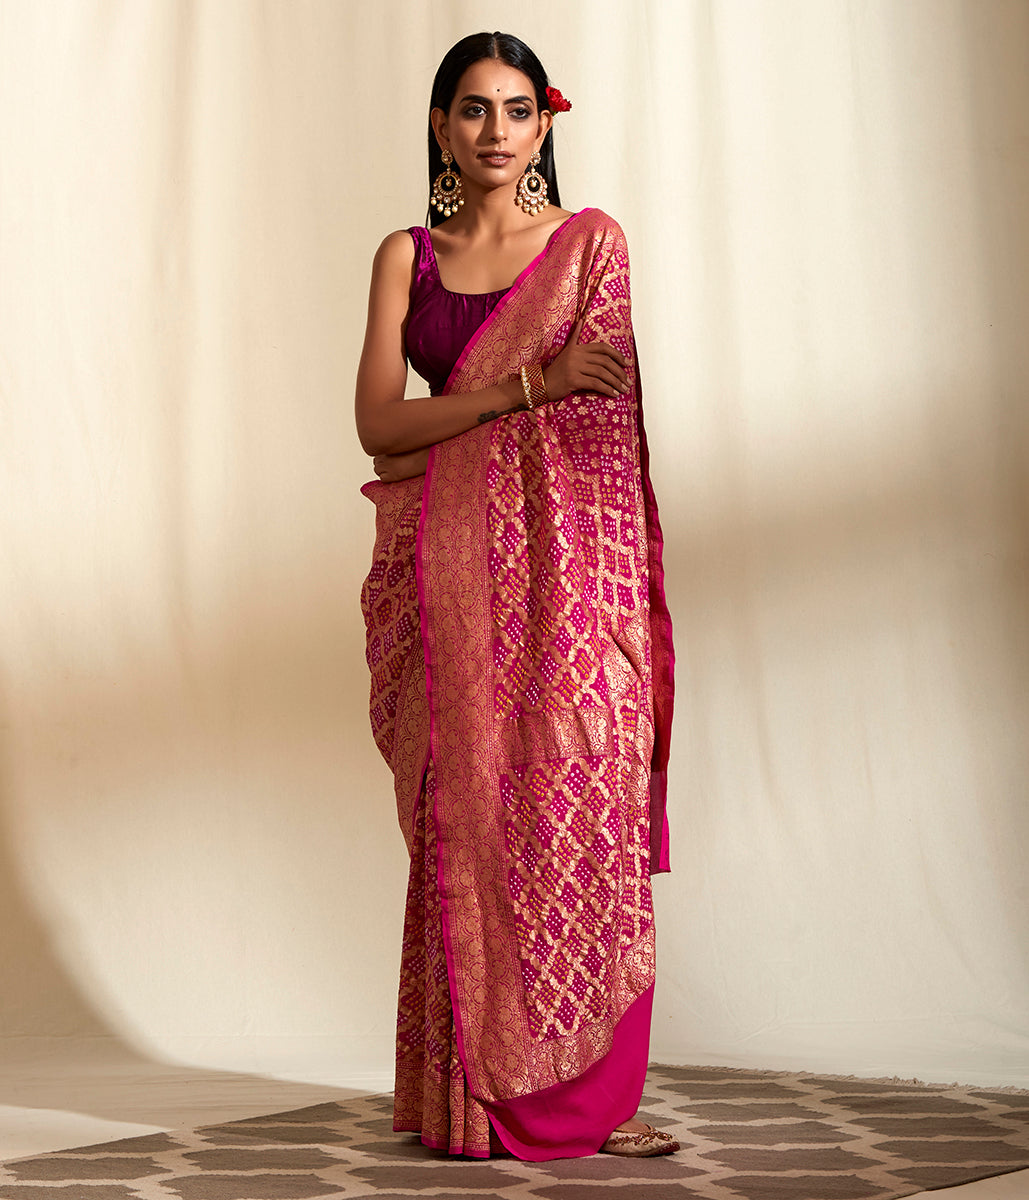 Handwoven Banarasi Bandhej Double Zari Saree in Dark Pink